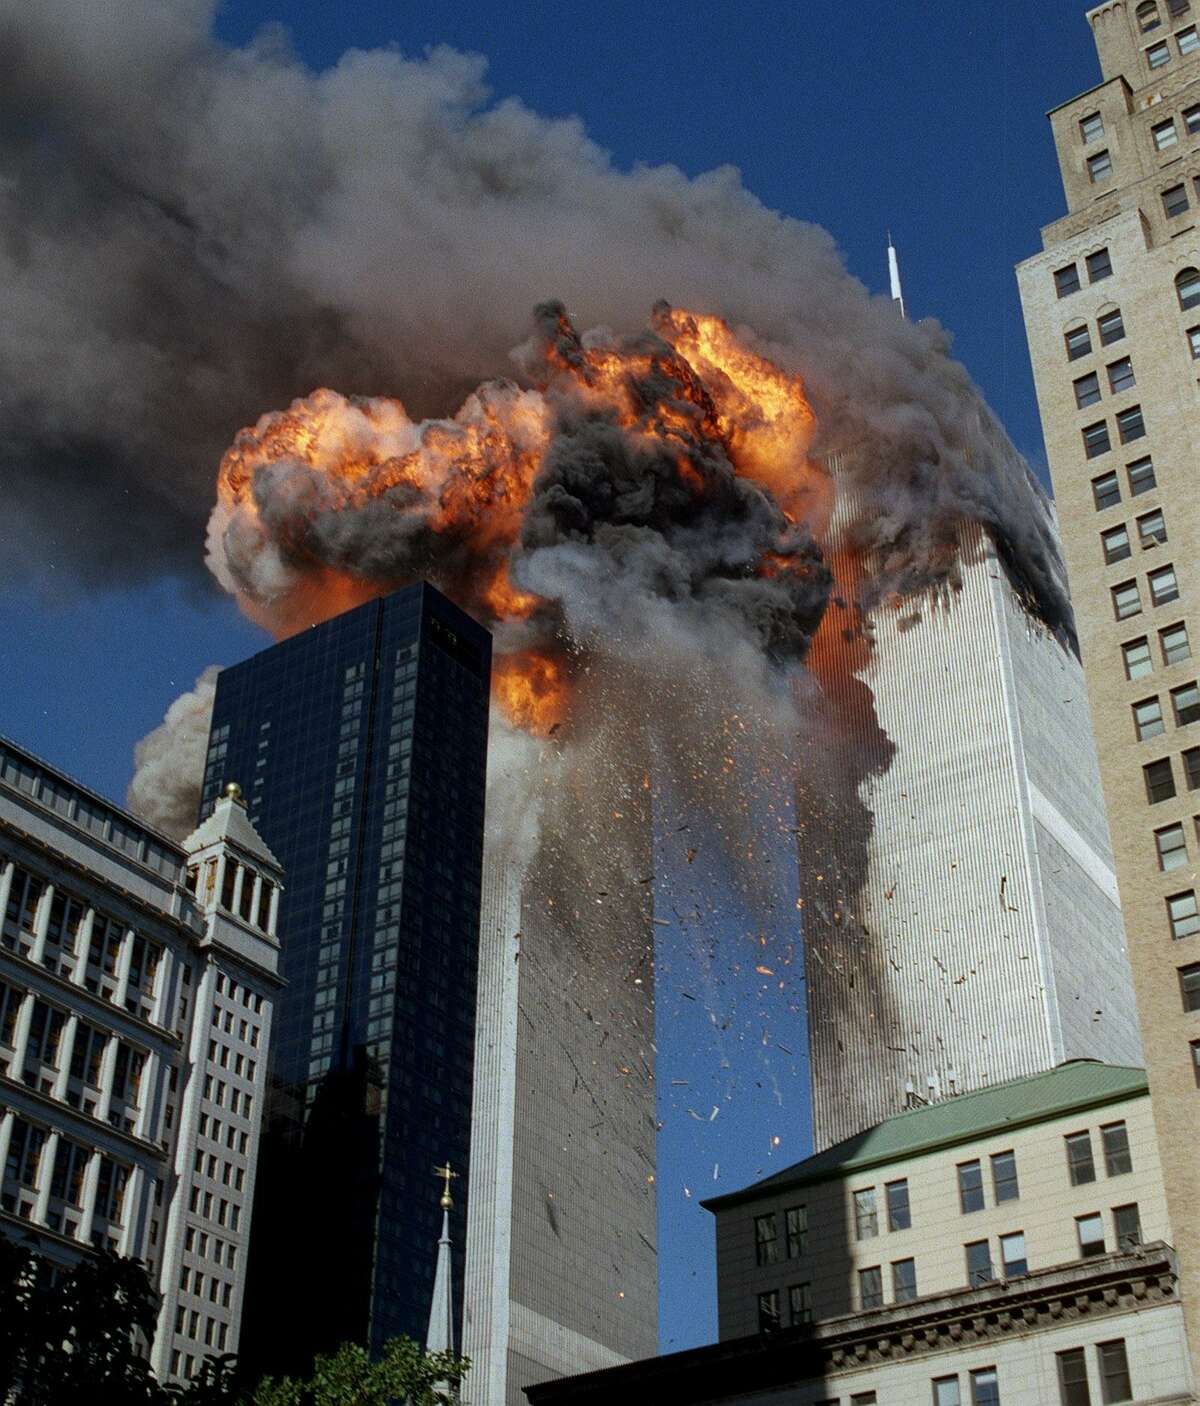 Smoke, flames and debris erupt from he World Trade Center towers on 9/11. Twenty years later, the pain endures as do reflections about how the attack changed our nation.